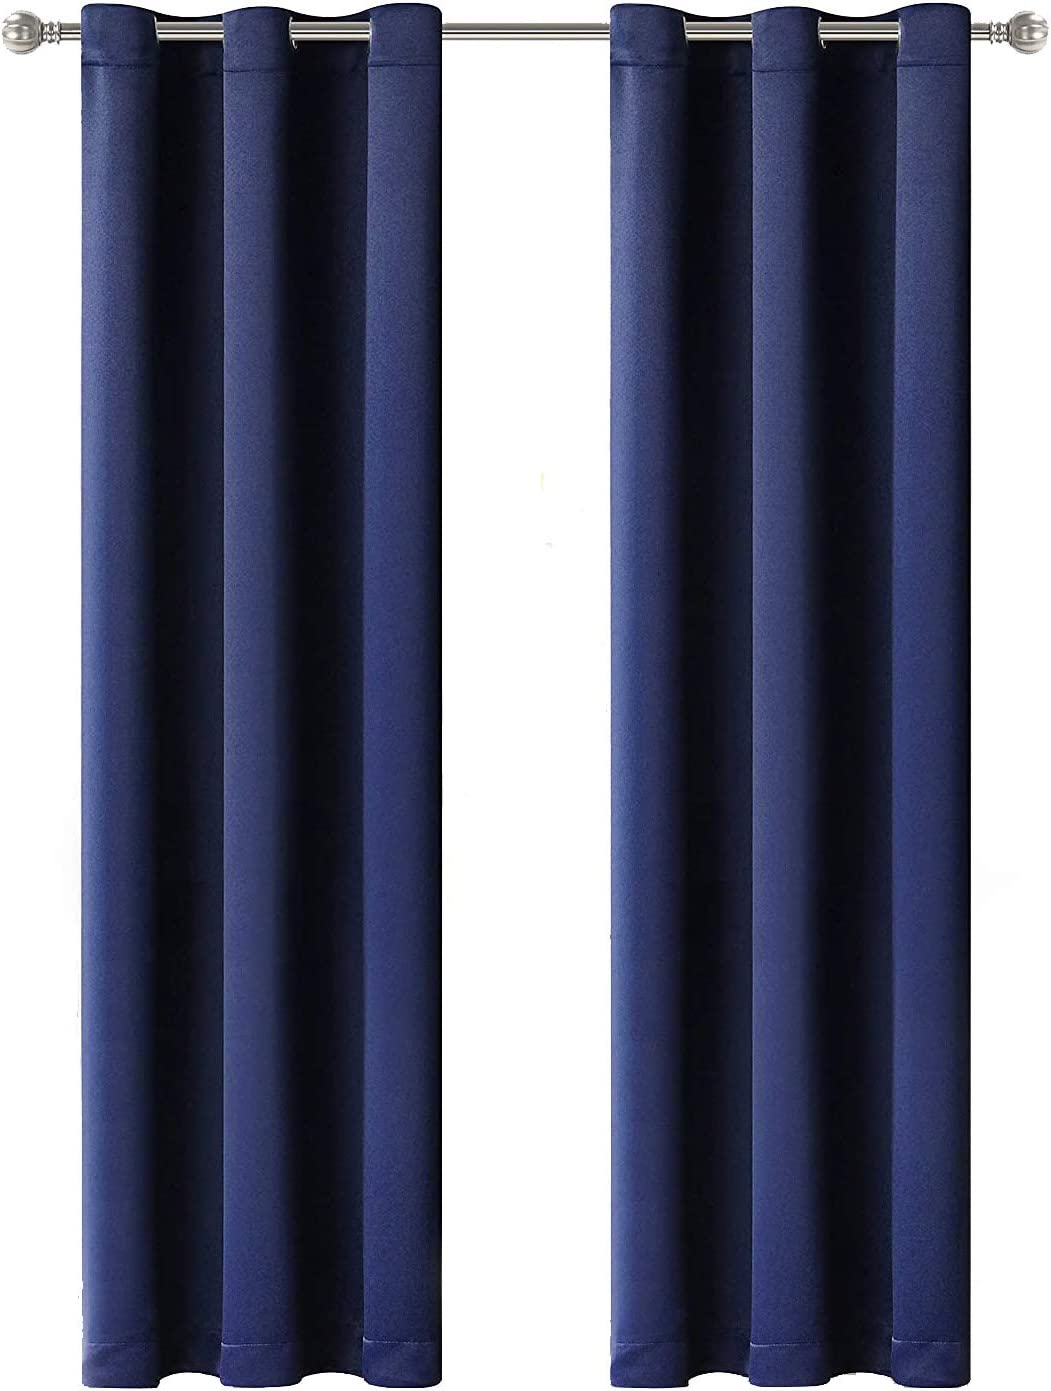 LORDTEX Blackout Curtains for Bedroom -Thermal Insulated Curtains with Grommet Top Room Darkening Noise Reducing Window Drapes for Living Room, 2 Panels, Navy, 42 x 84 inch